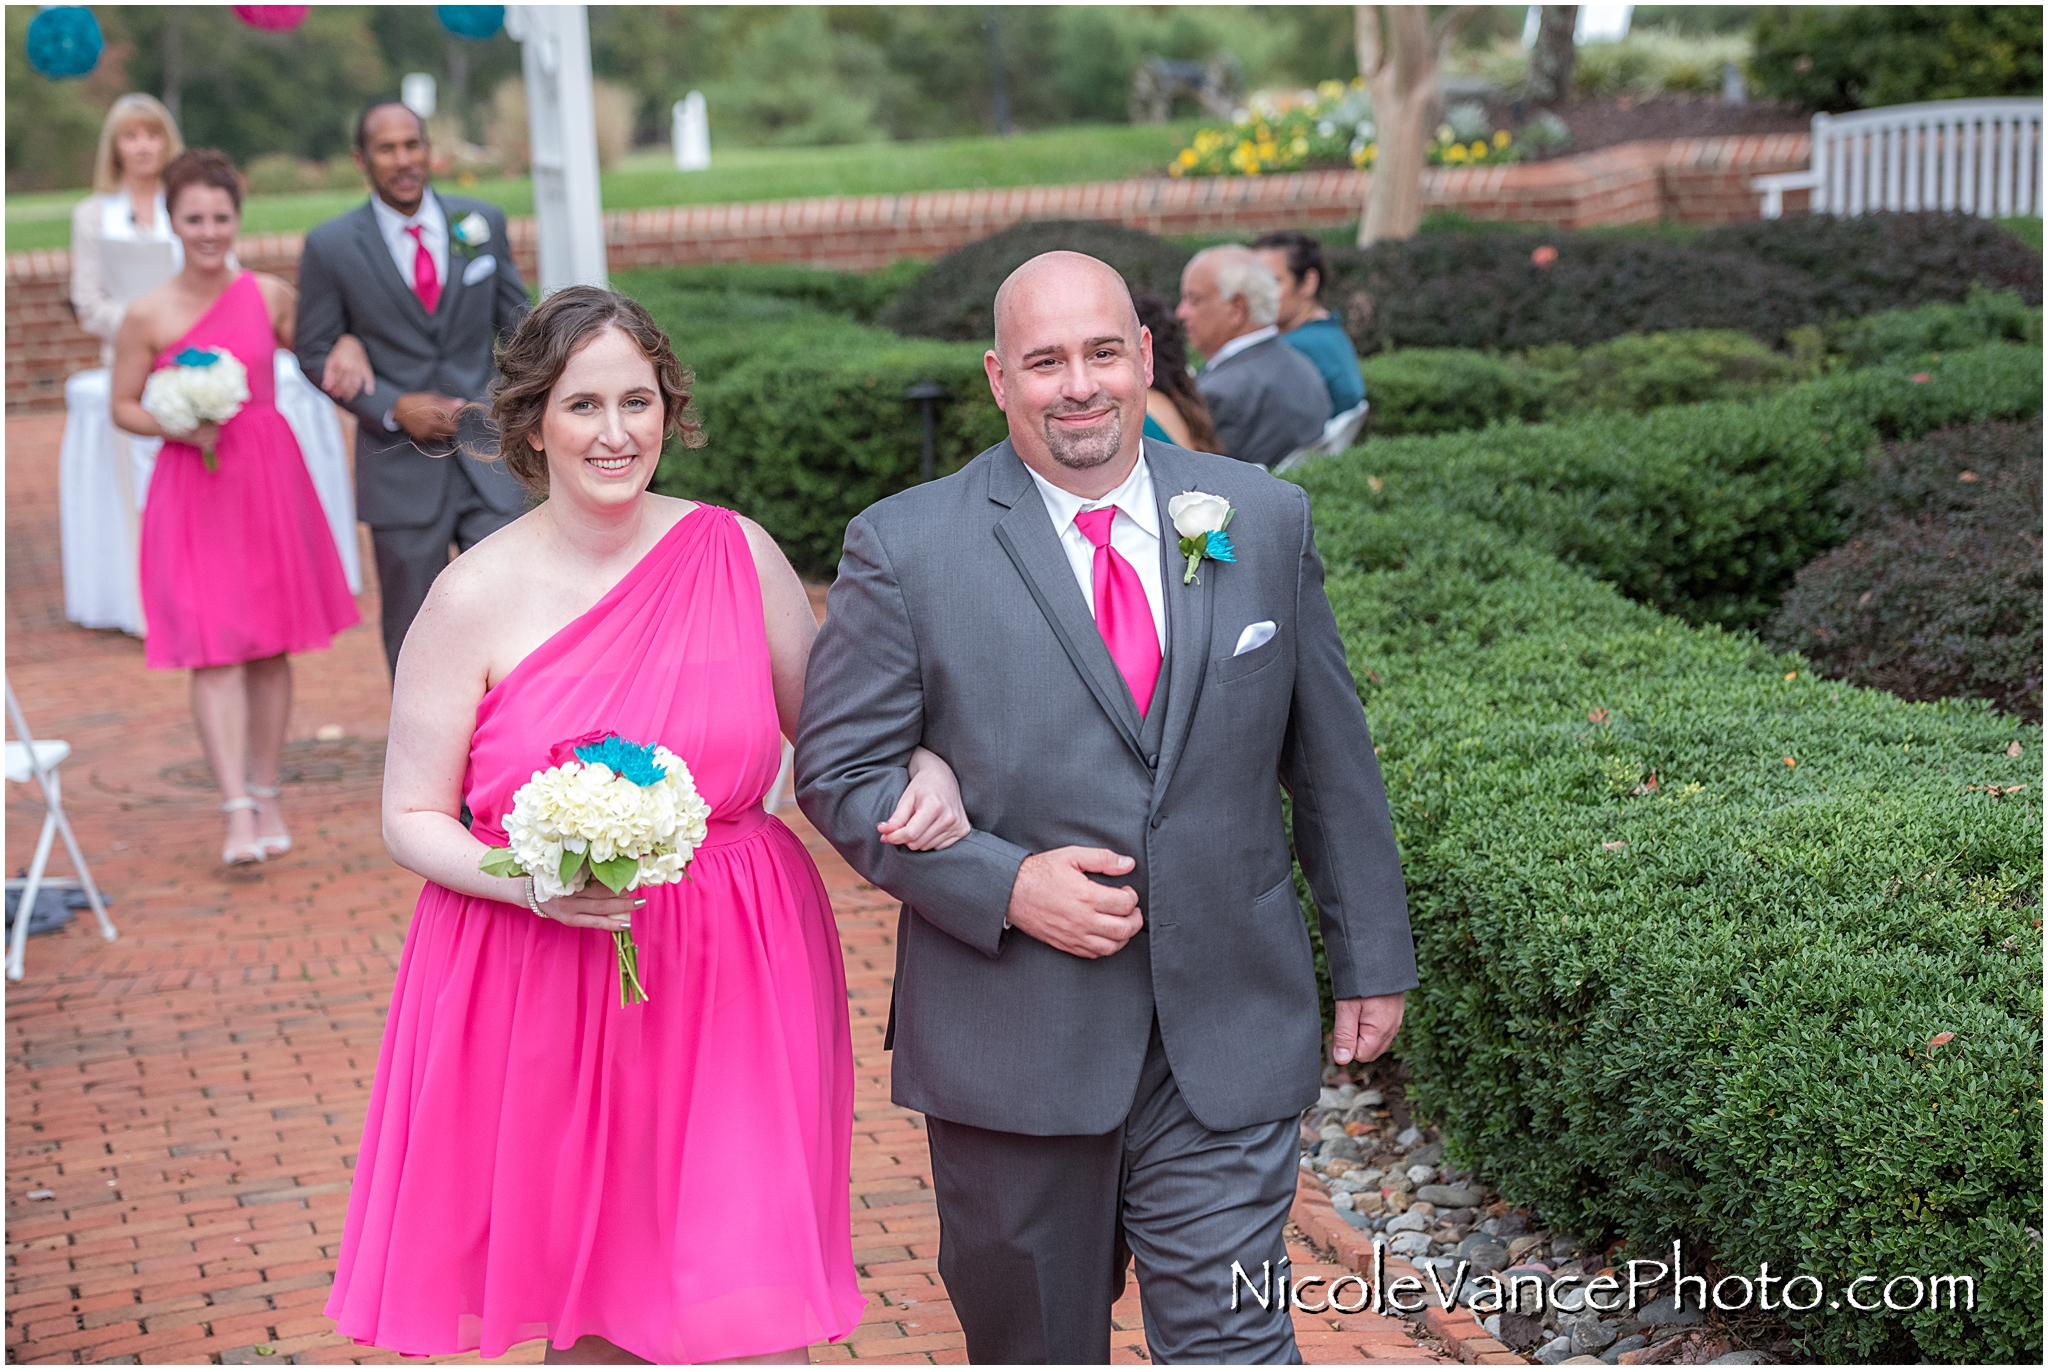 The wedding party exits the ceremony at Virginia Crossings.